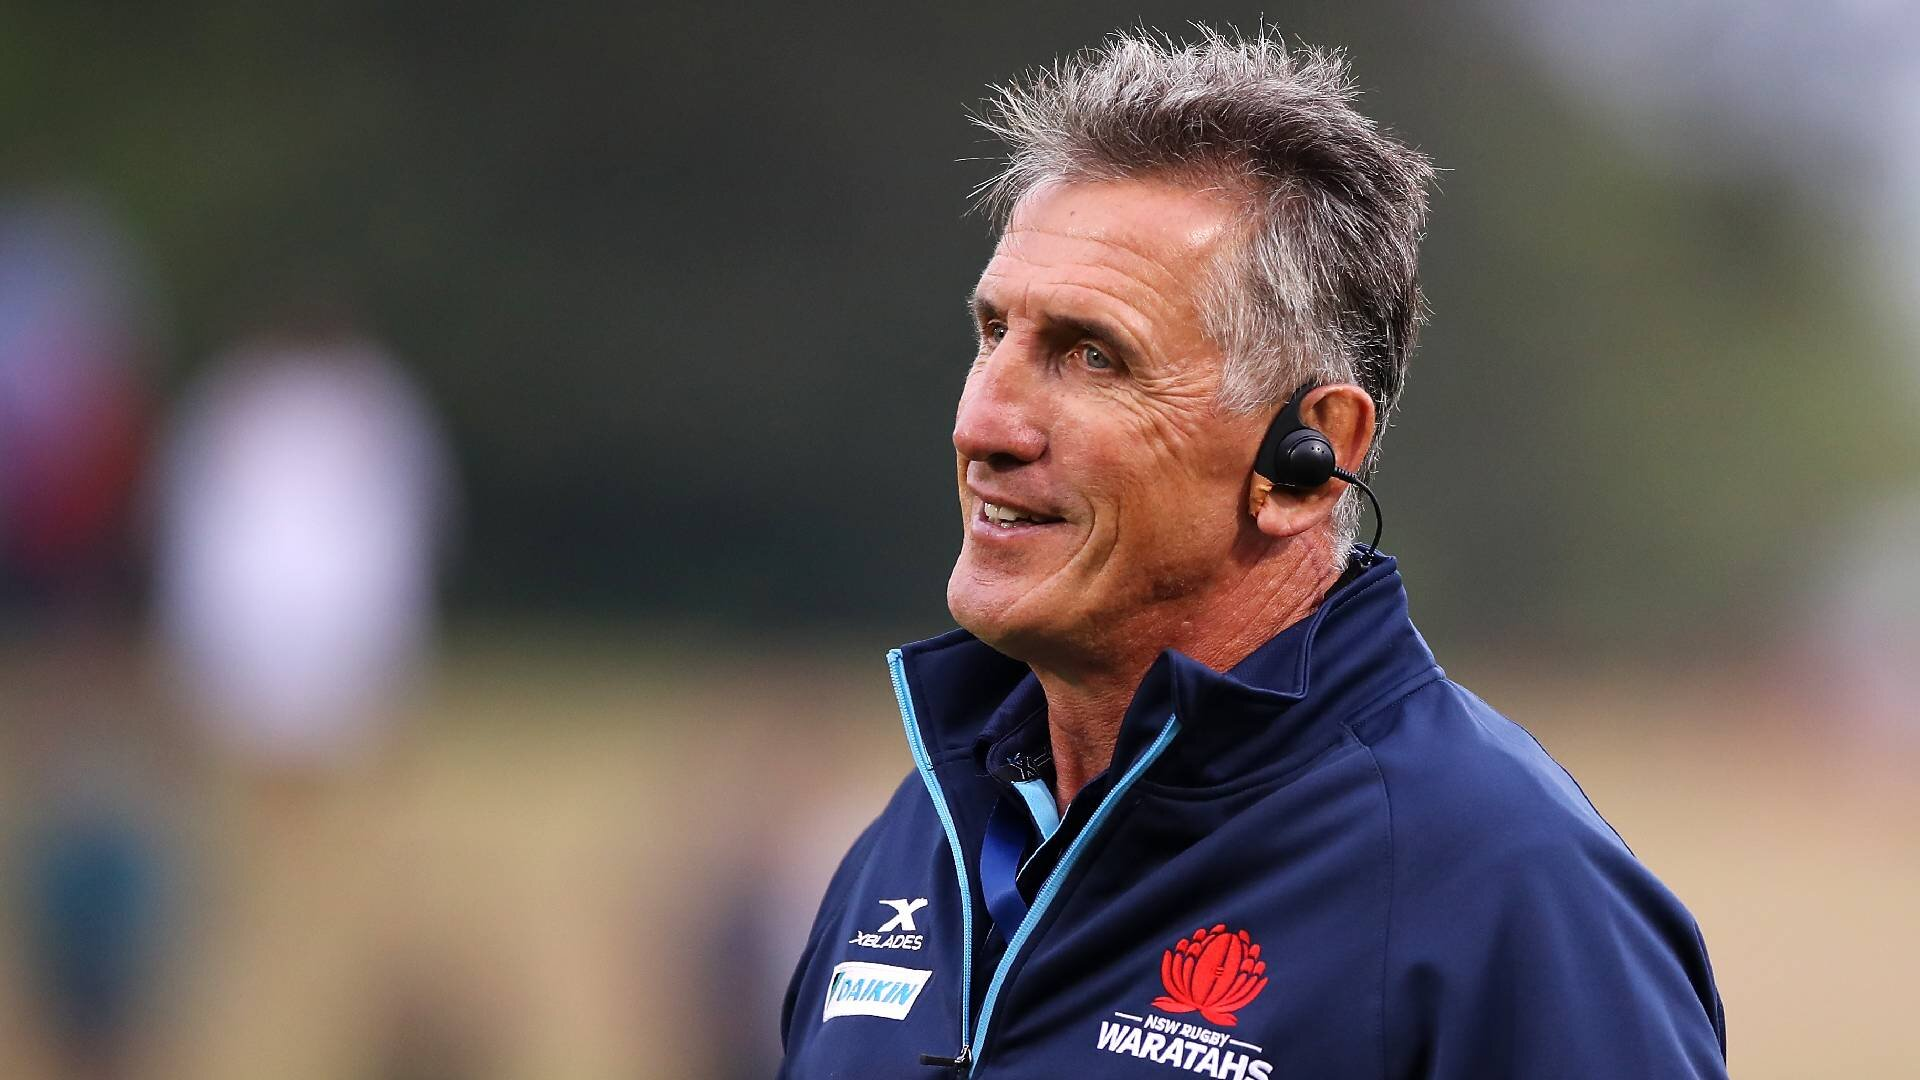 'They are good ones, crikey': Waratahs coach Rob Penney in awe of rookies in compelling pre-season victory over Highlanders